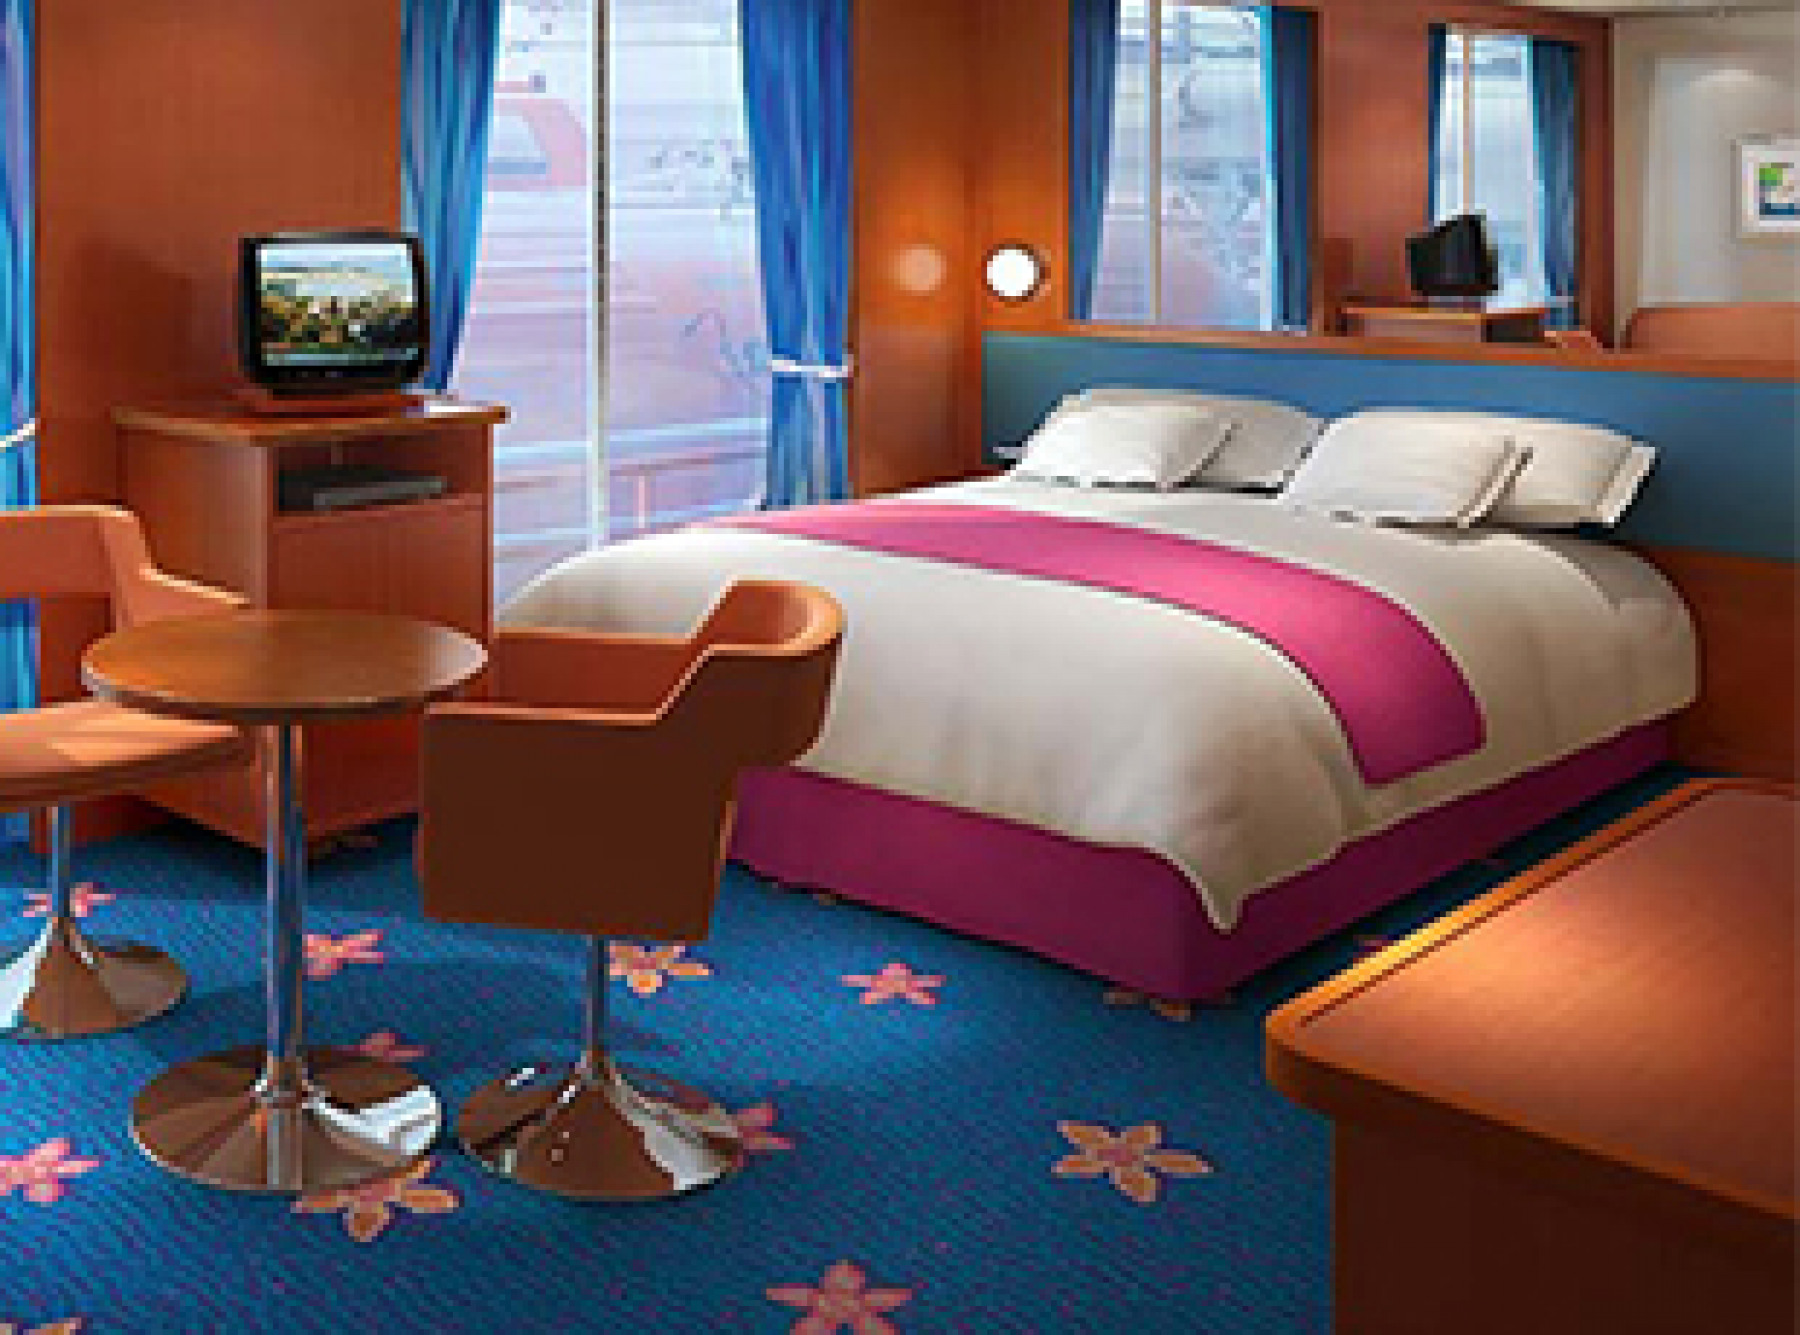 Norwegian Cruise Line Pride of America Accommodation Obstructed Family Suite.jpg